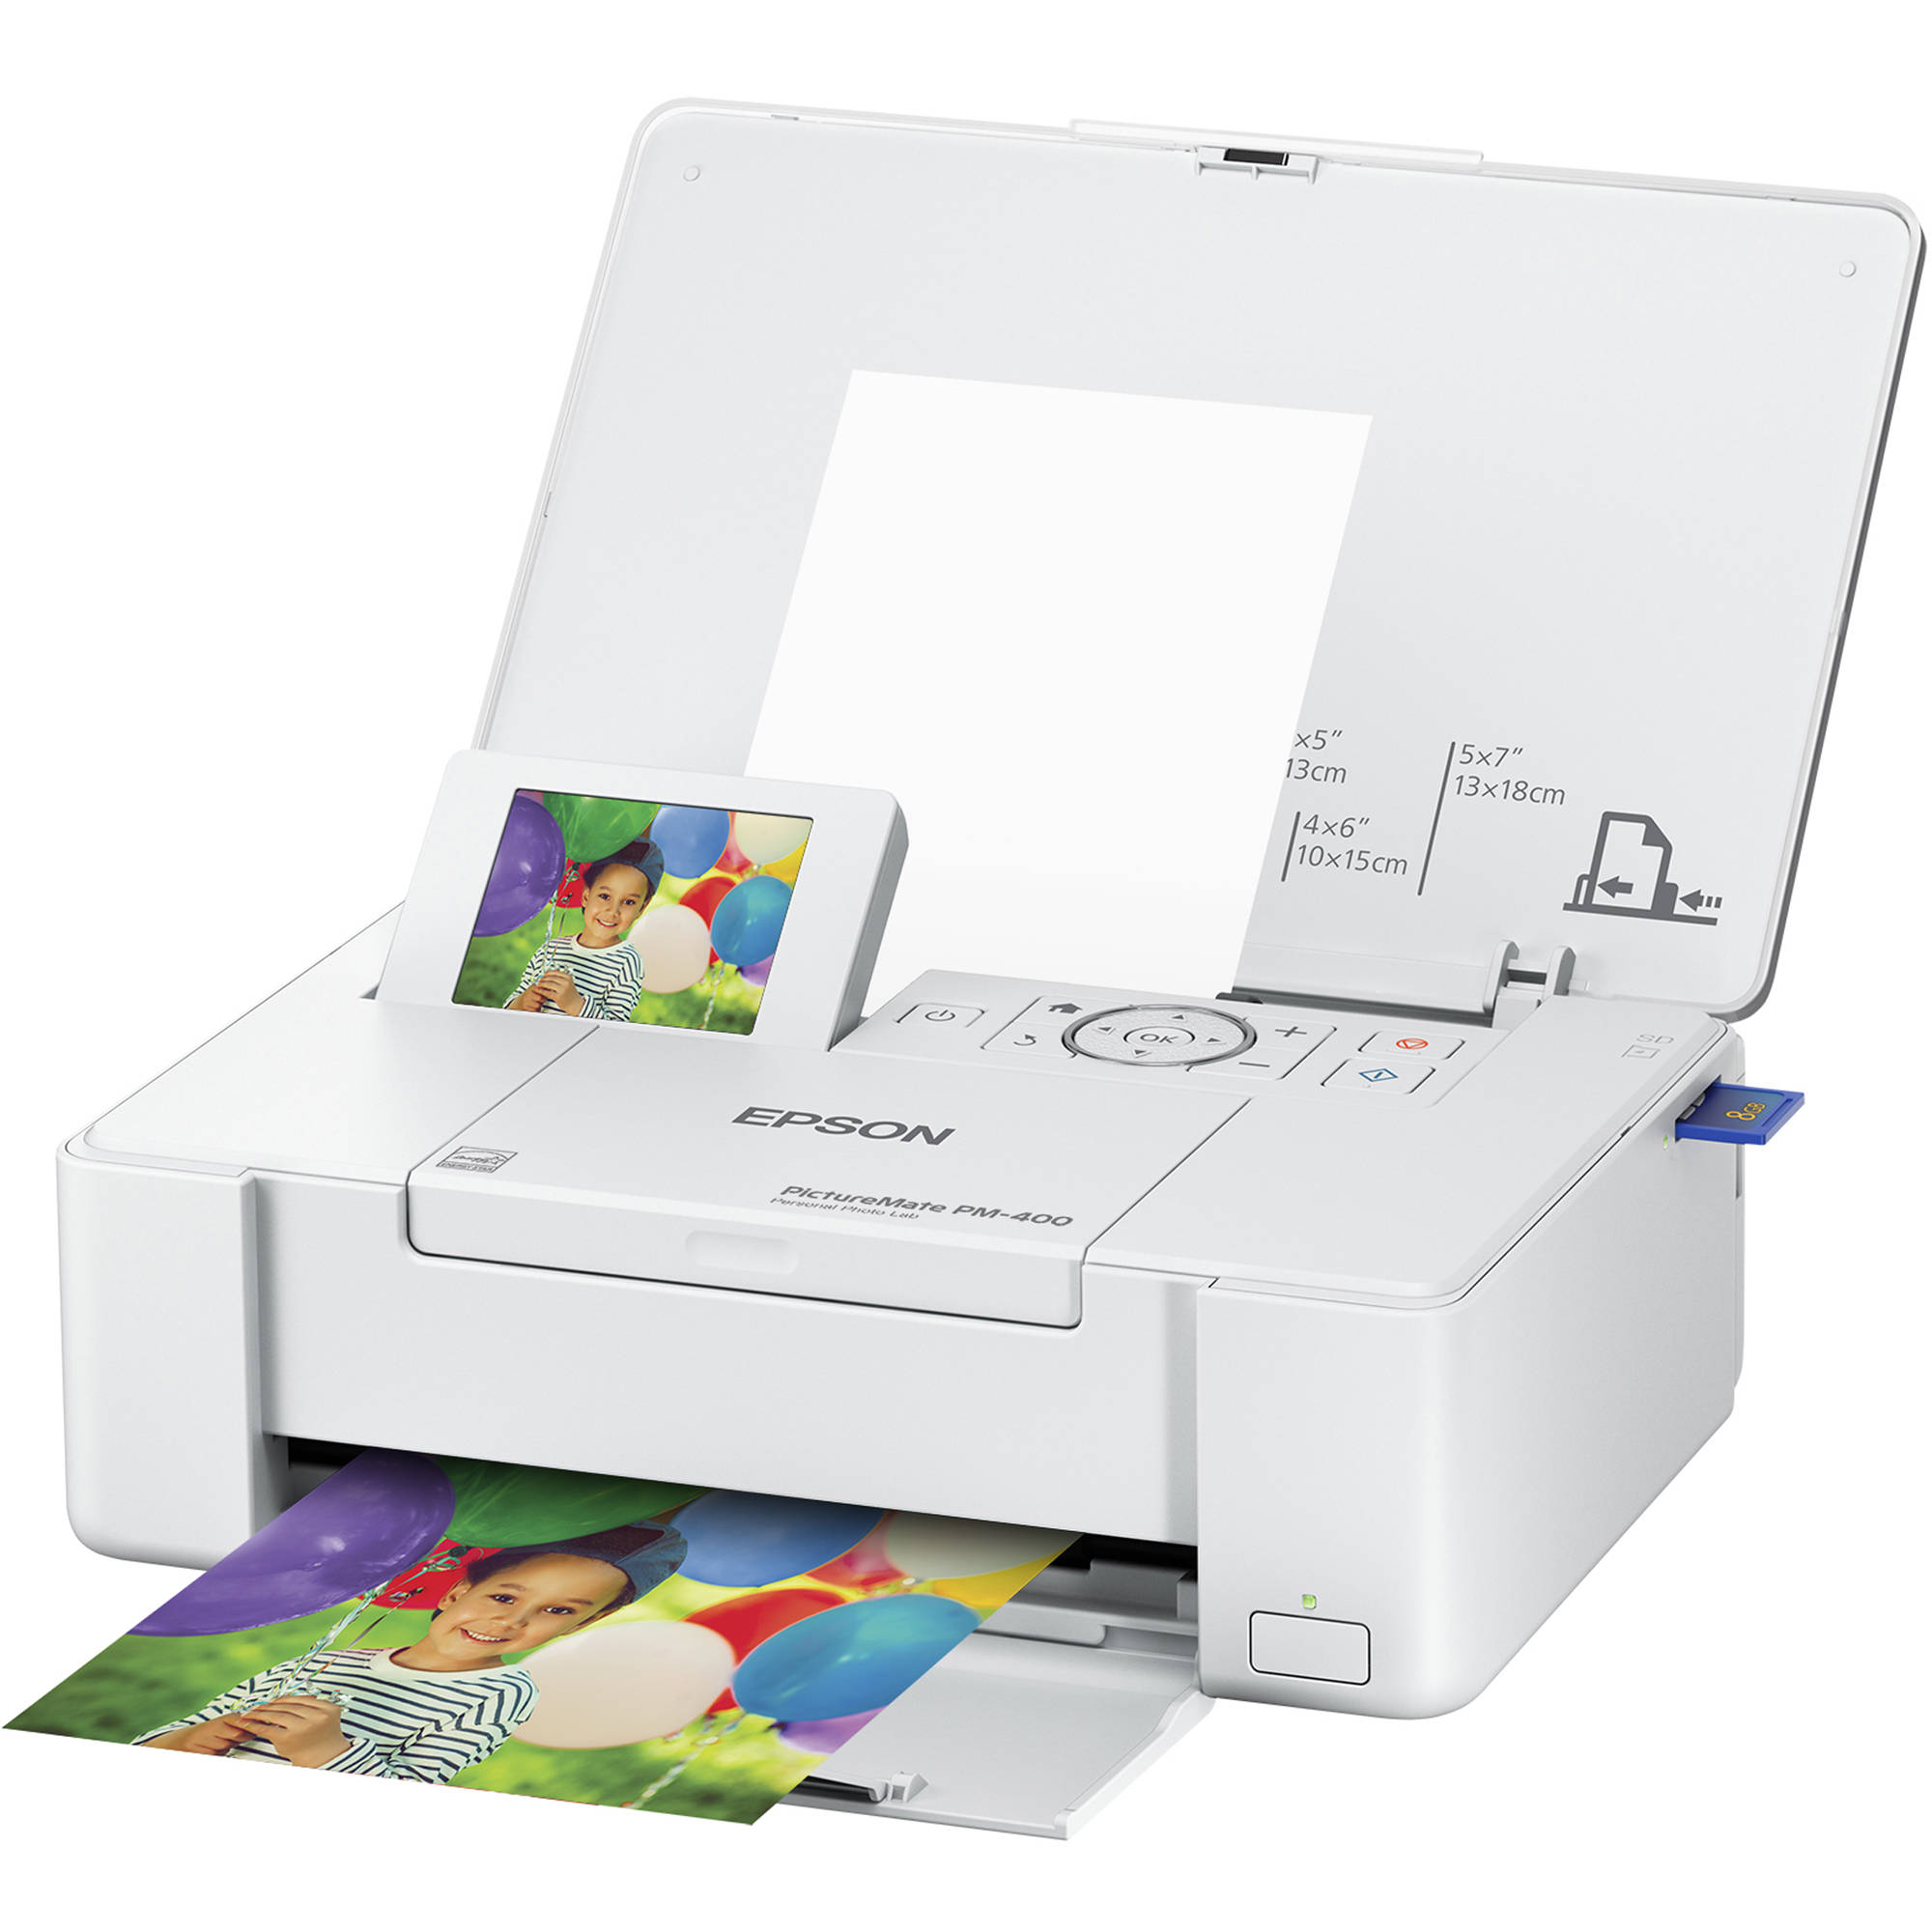 Epson PictureMate PM 225 Photo Printer Driver for Windows Download